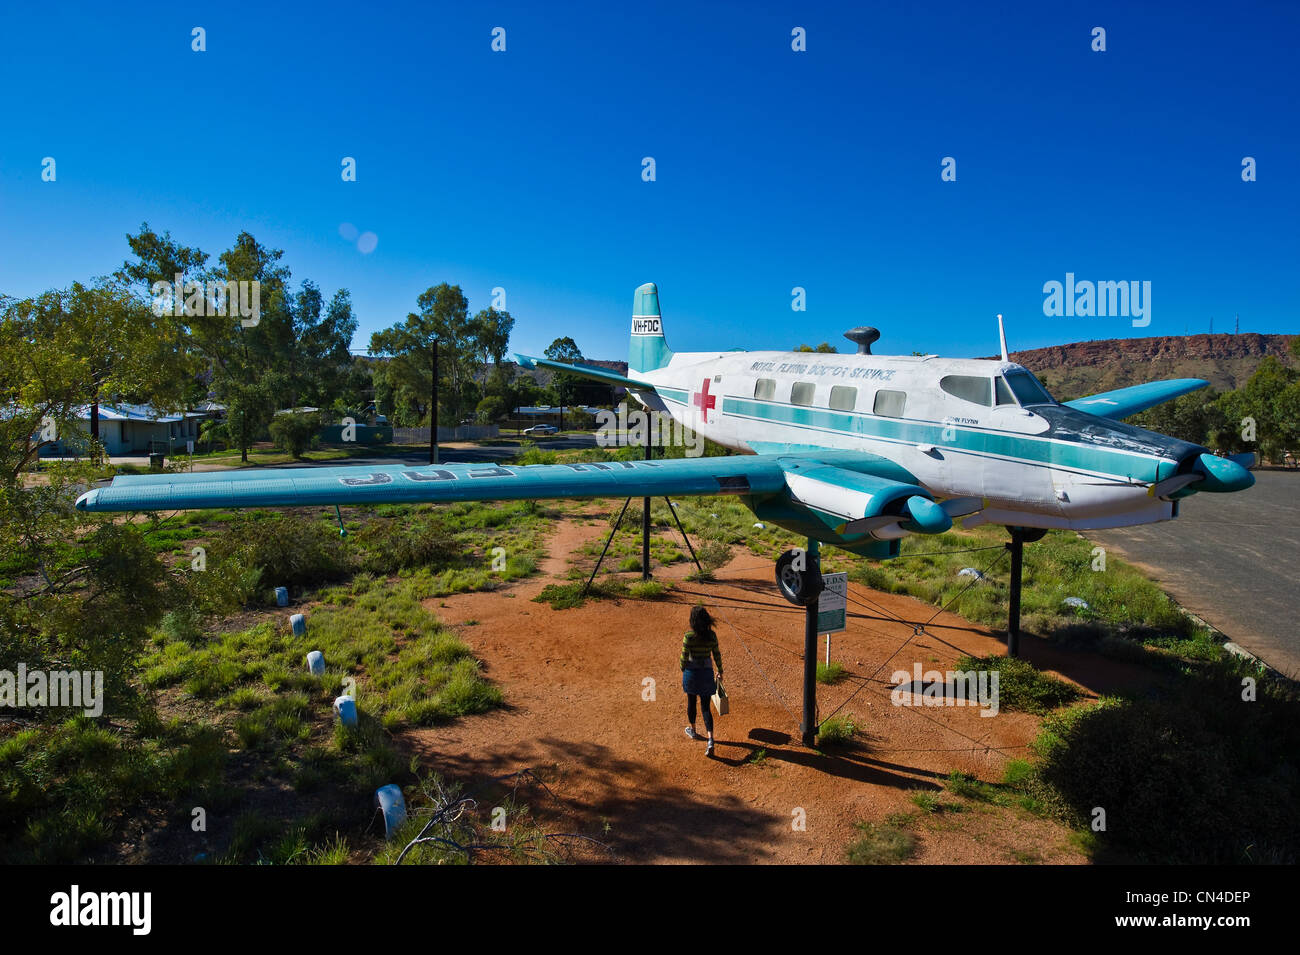 Australia, Northern Territory, Alice Springs, Flying Doctors memorial - Stock Image